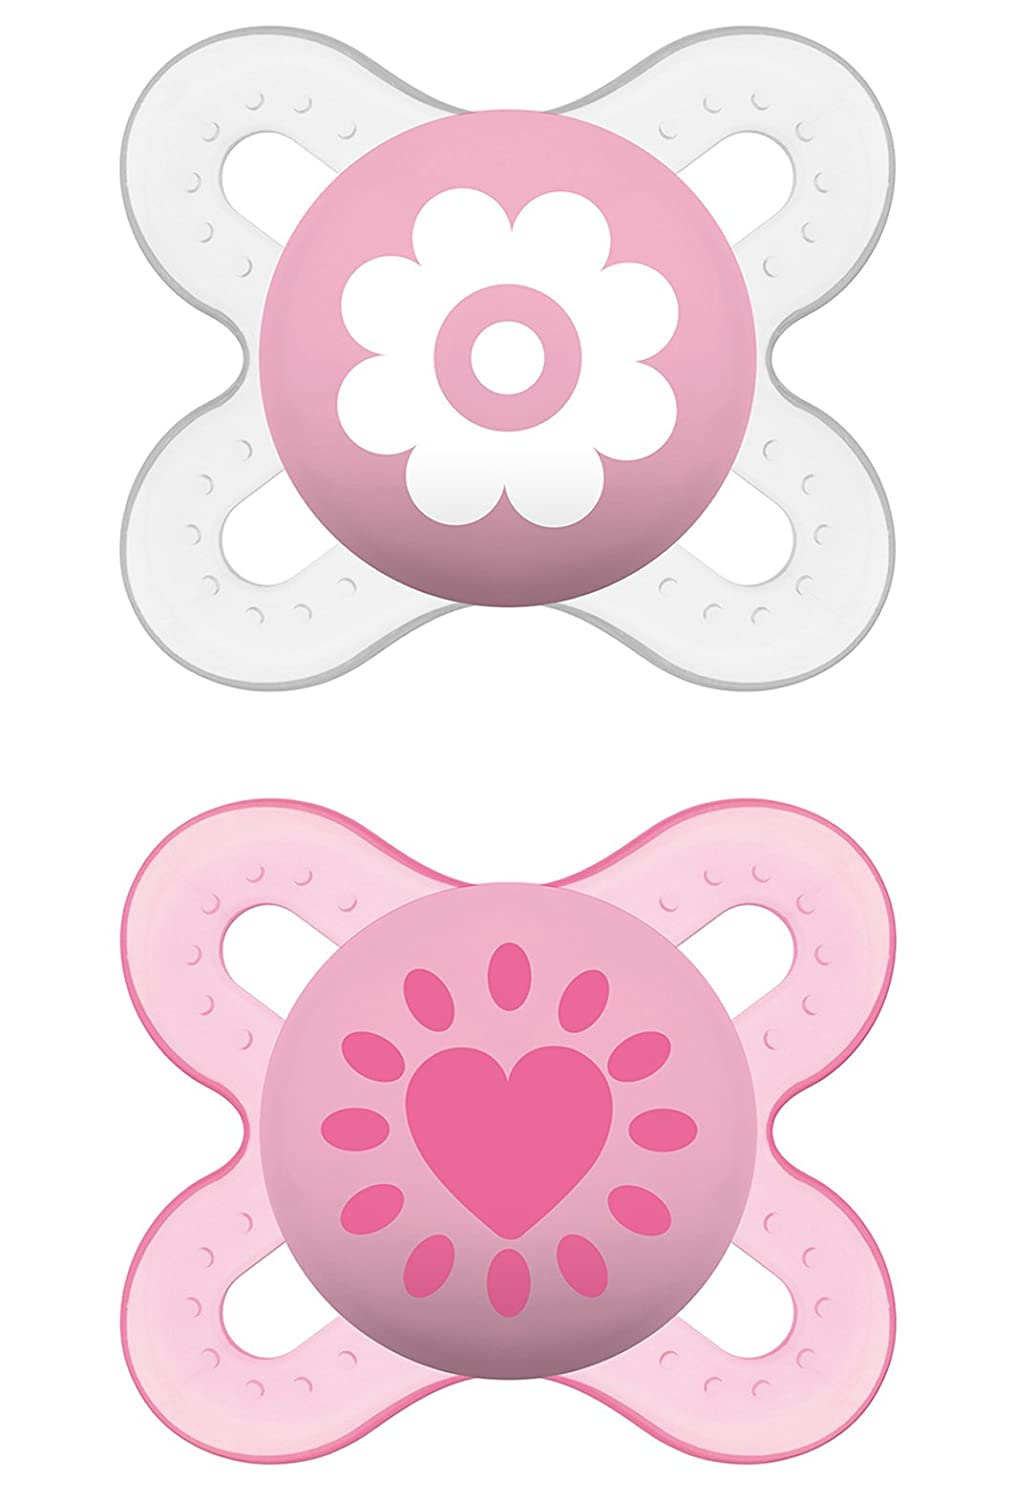 MAM Start Silicone Dummies Pack of 2 for Ages 0-2 Months MAM Babyartikel 66643822